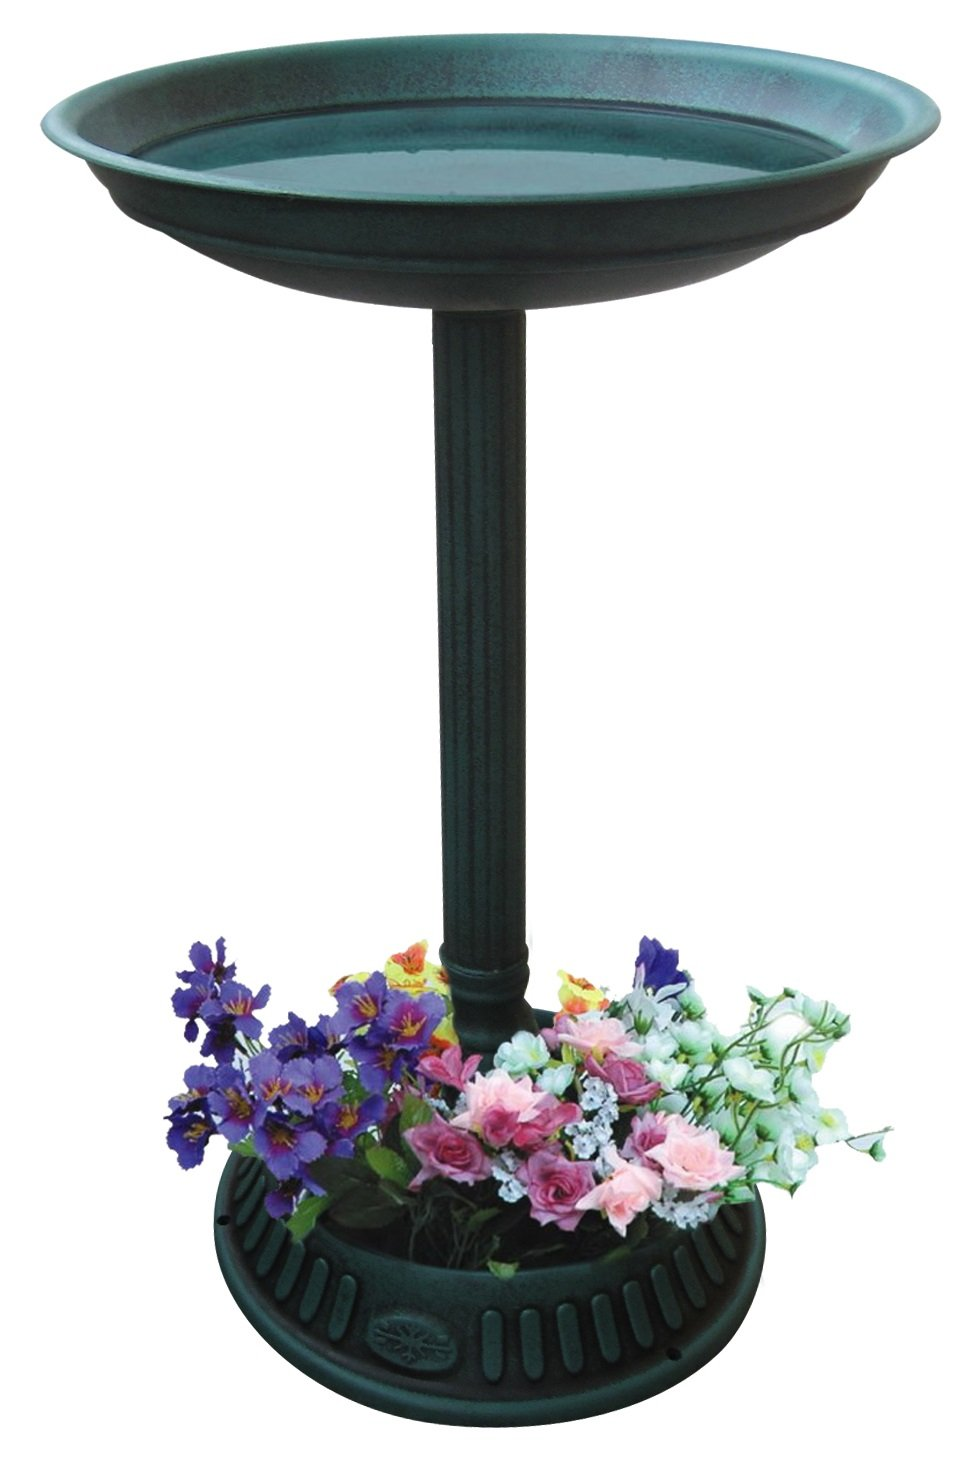 Alpine TIZ112 25 Birdbath with Planter Pedestal, Green